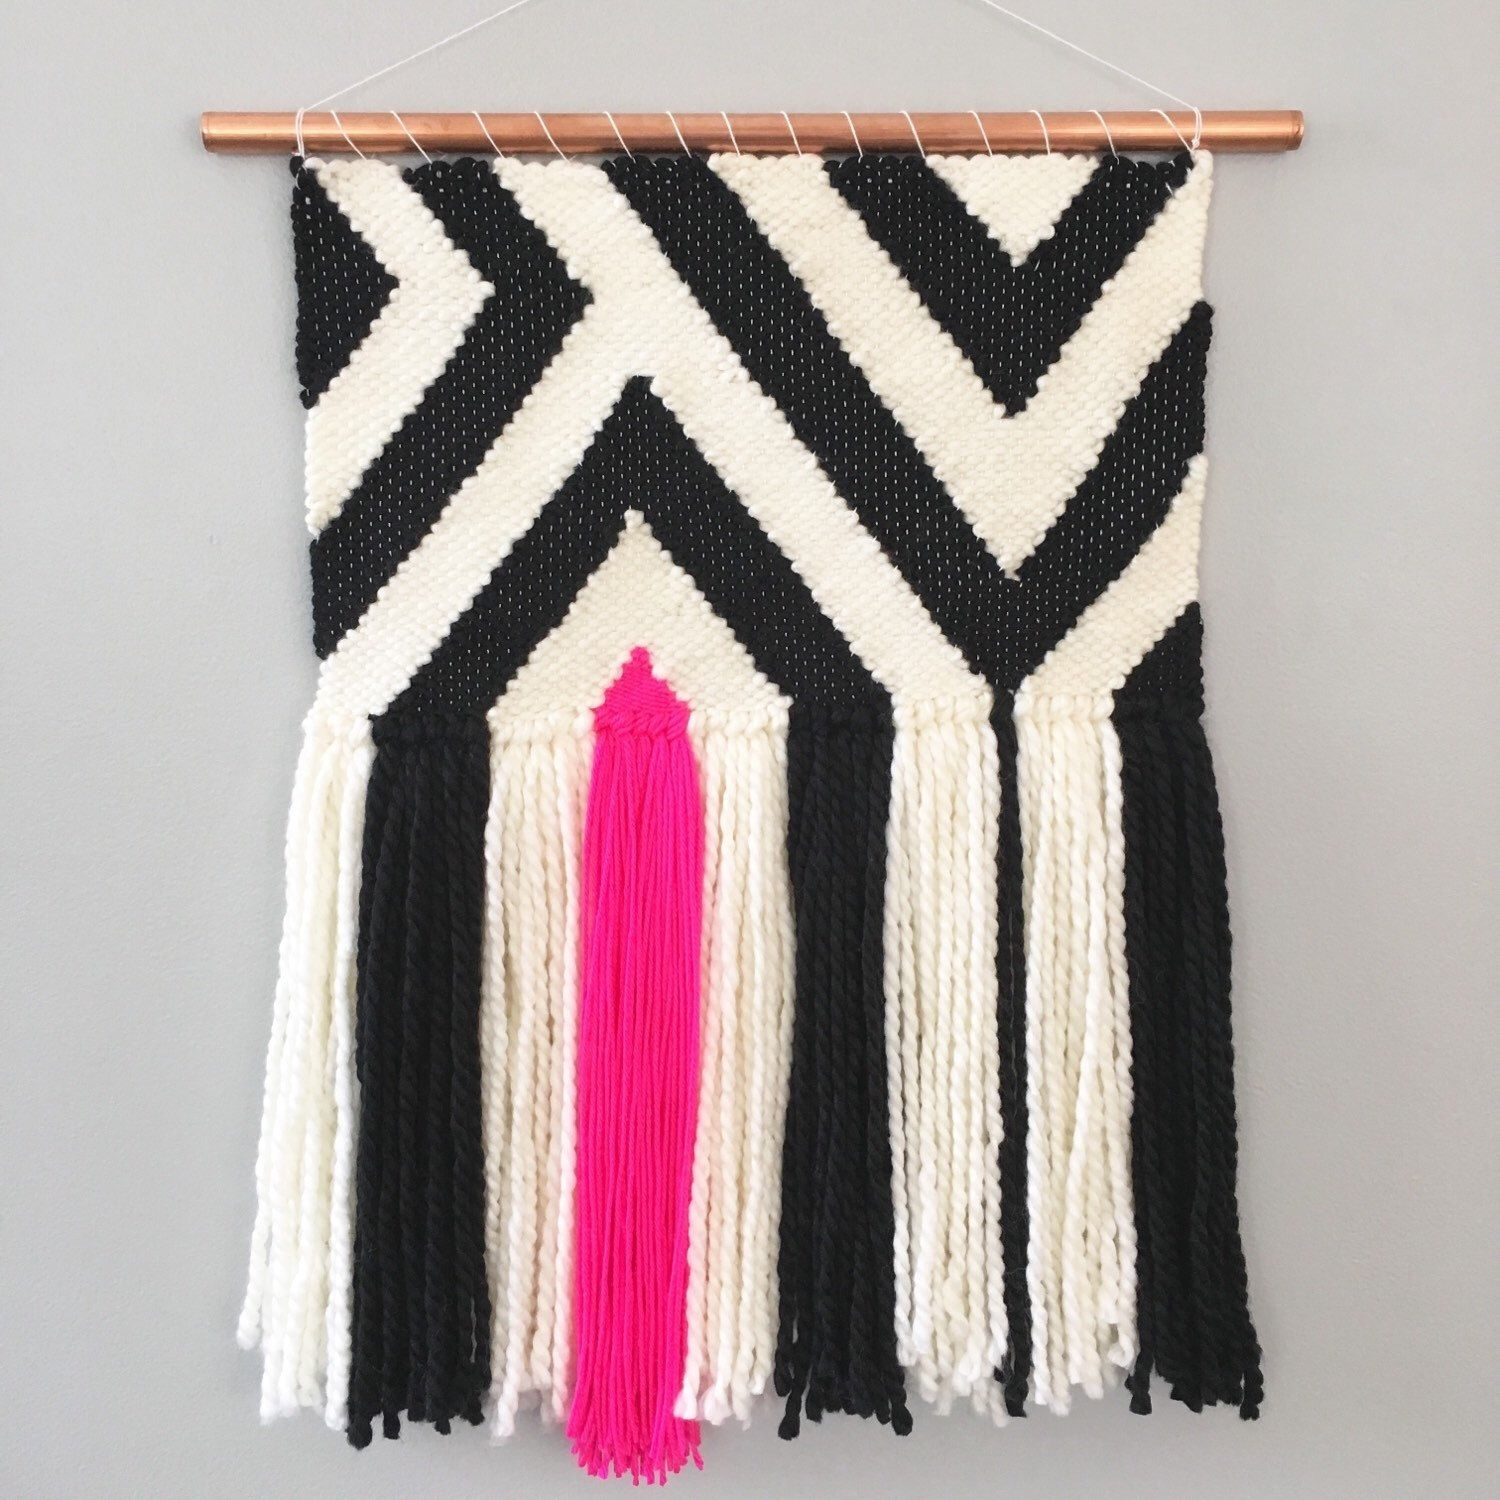 Ready To Ship Handmade Woven Wall Hanging Tapestry Weaving Wall Intended For Most Recent Handmade Textile Wall Art (Gallery 15 of 15)